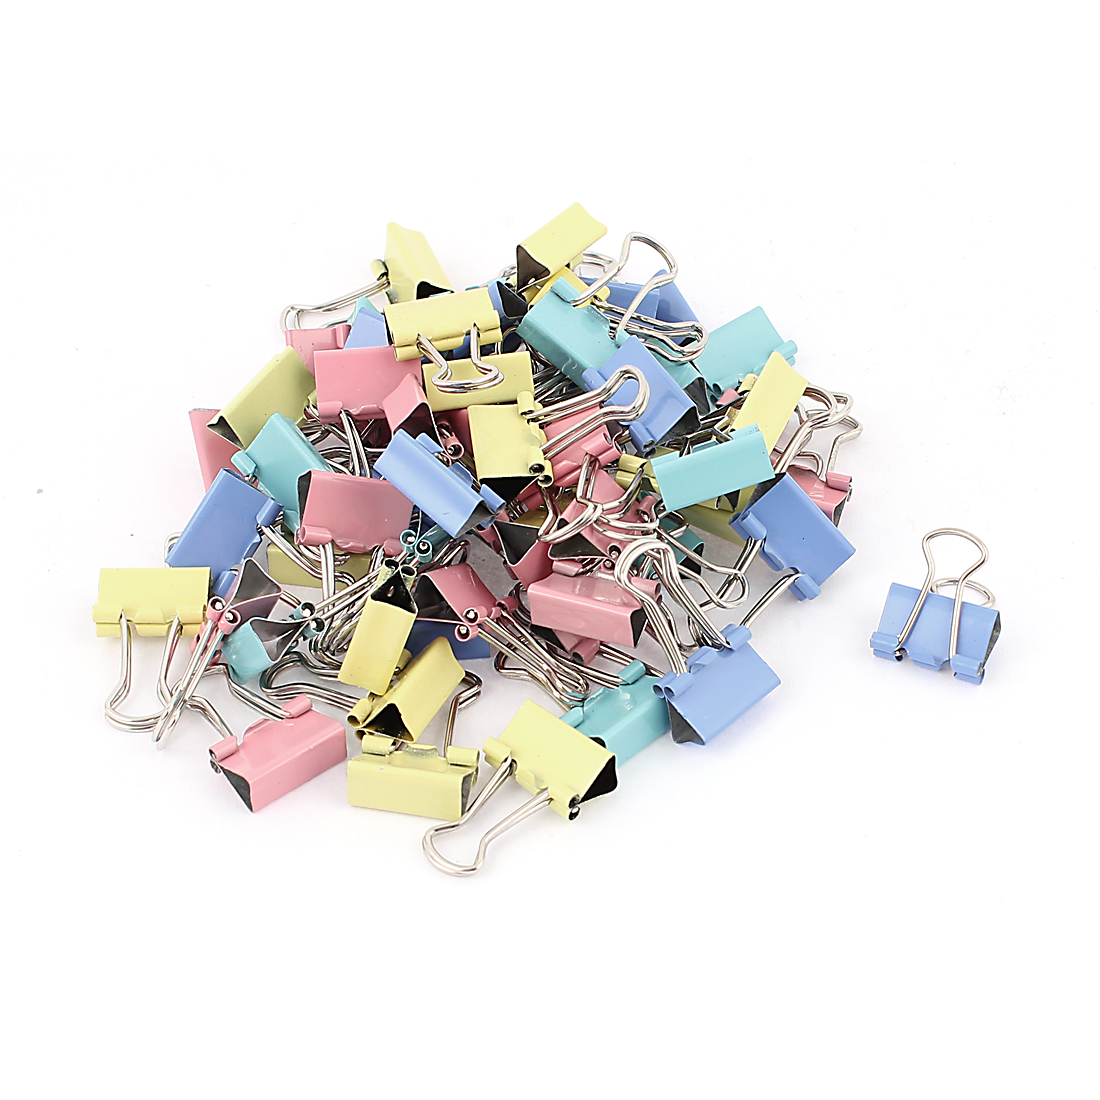 Office 15mm Wide Paper File Ticket Spring Binder Clips Assorted Color 60pcs